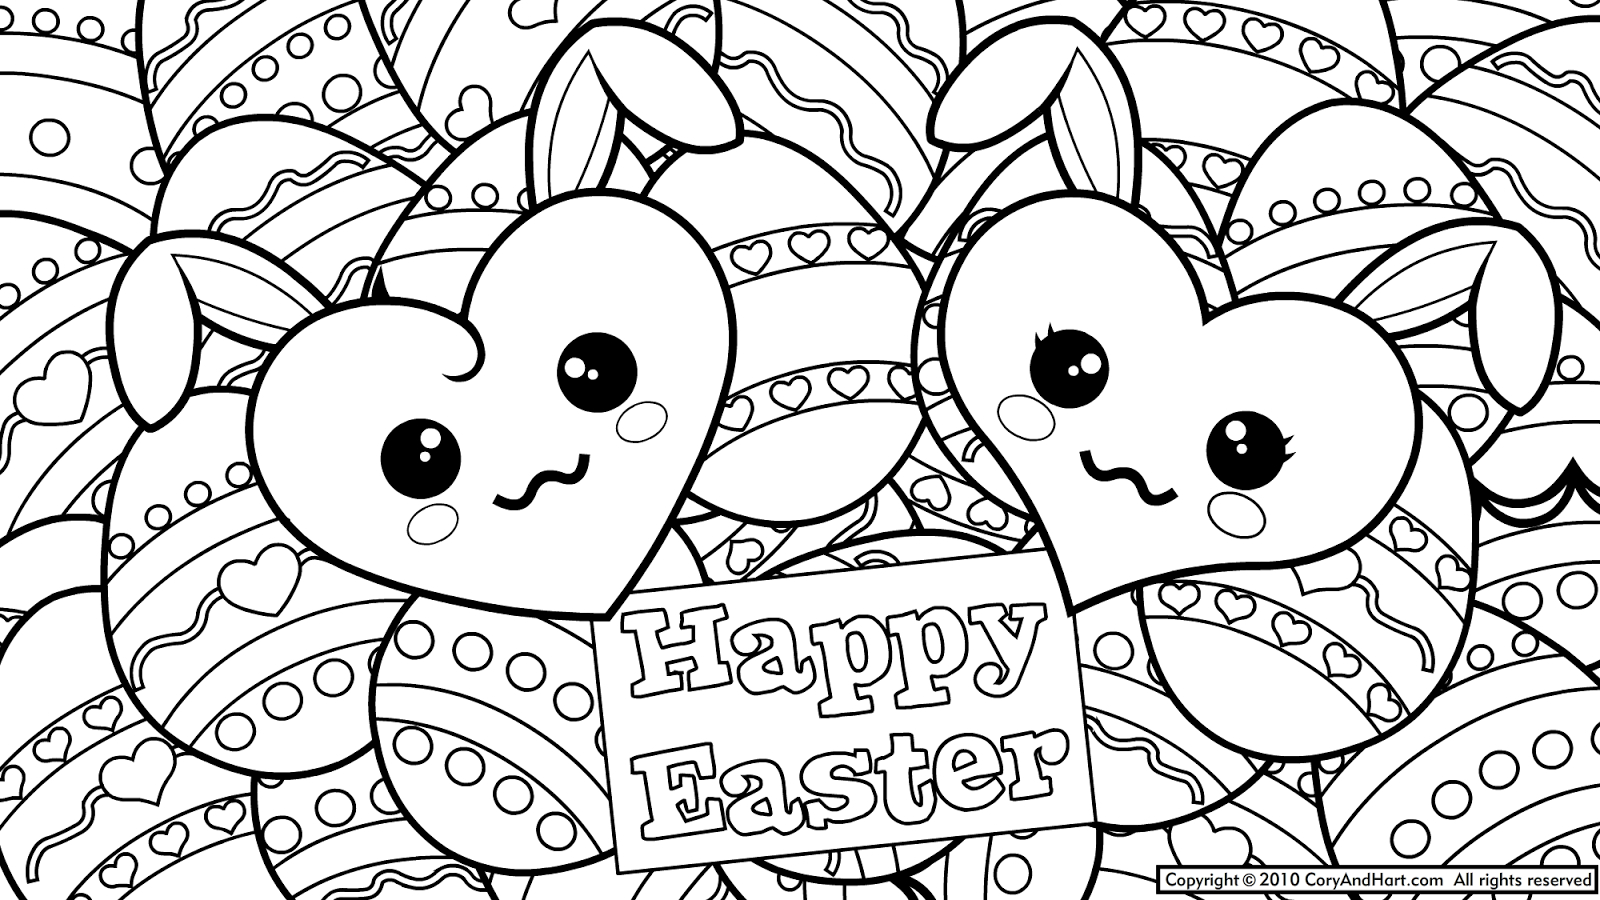 Mosaic Coloring Pages to Print Collection Of Easter Coloring14 Gallery